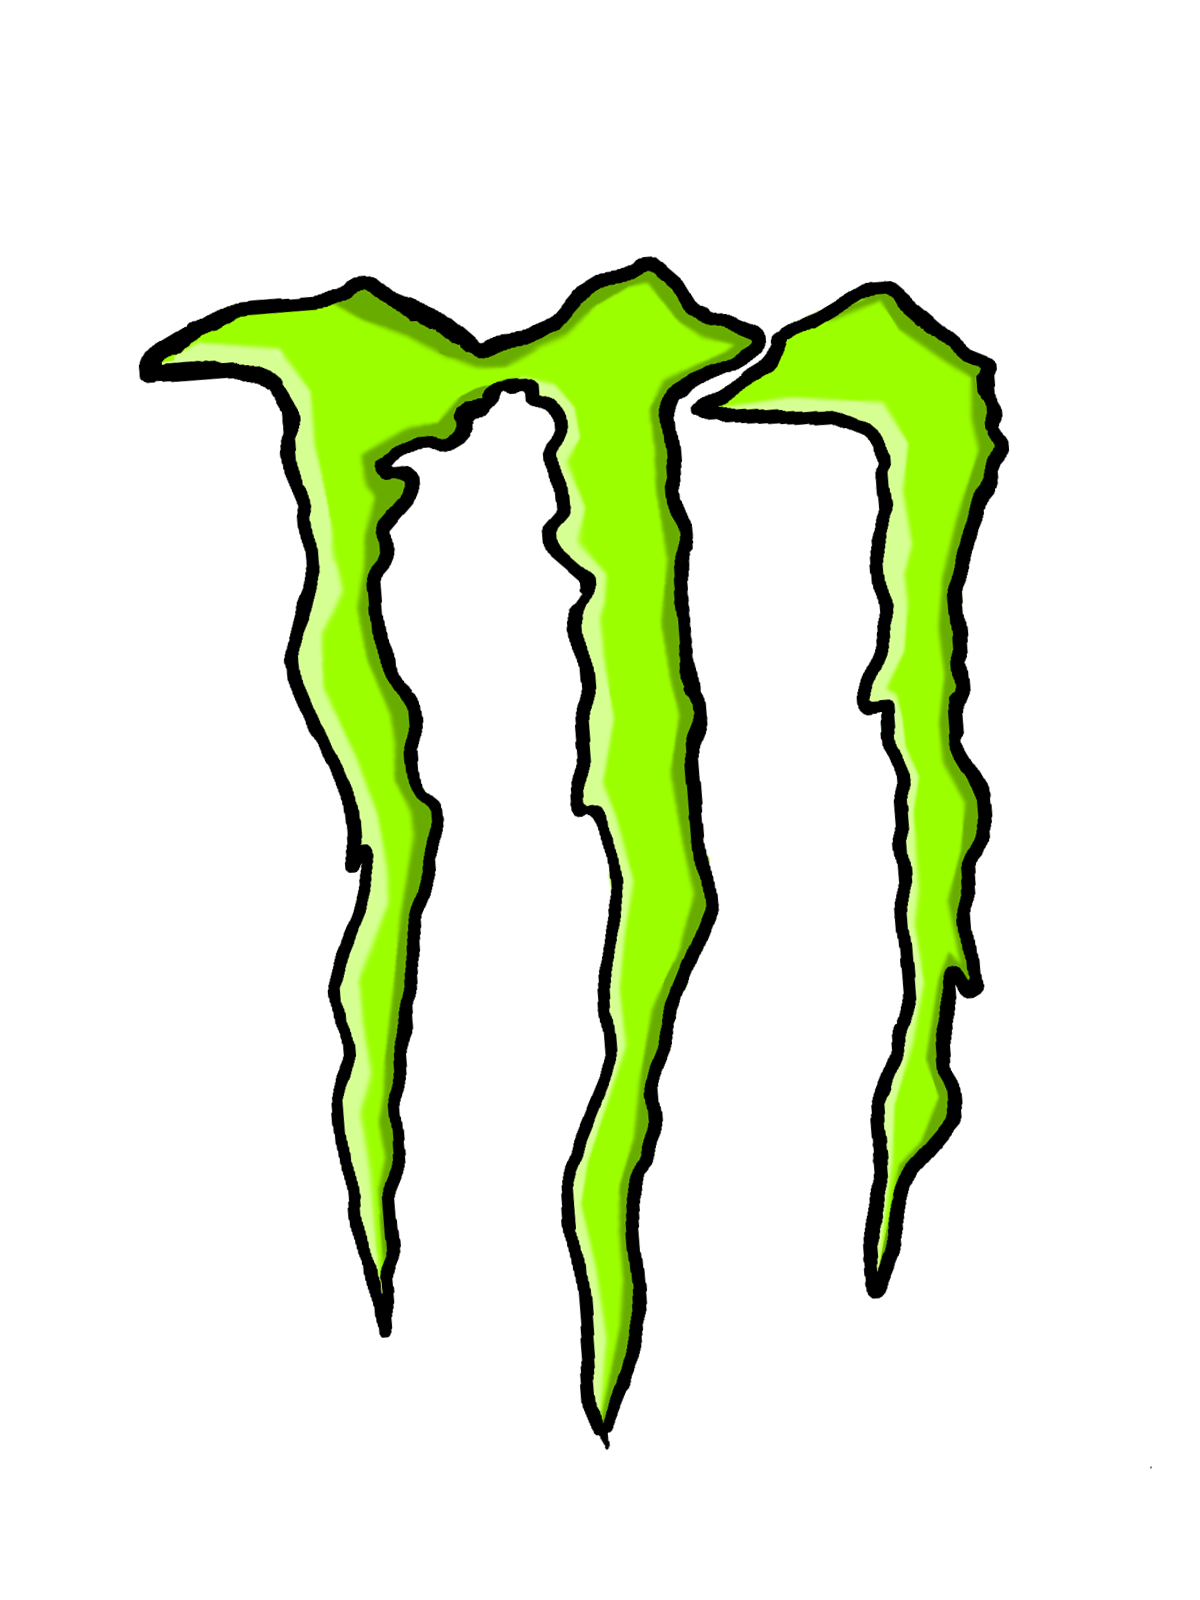 Monster energy png. Drink embroidery design google